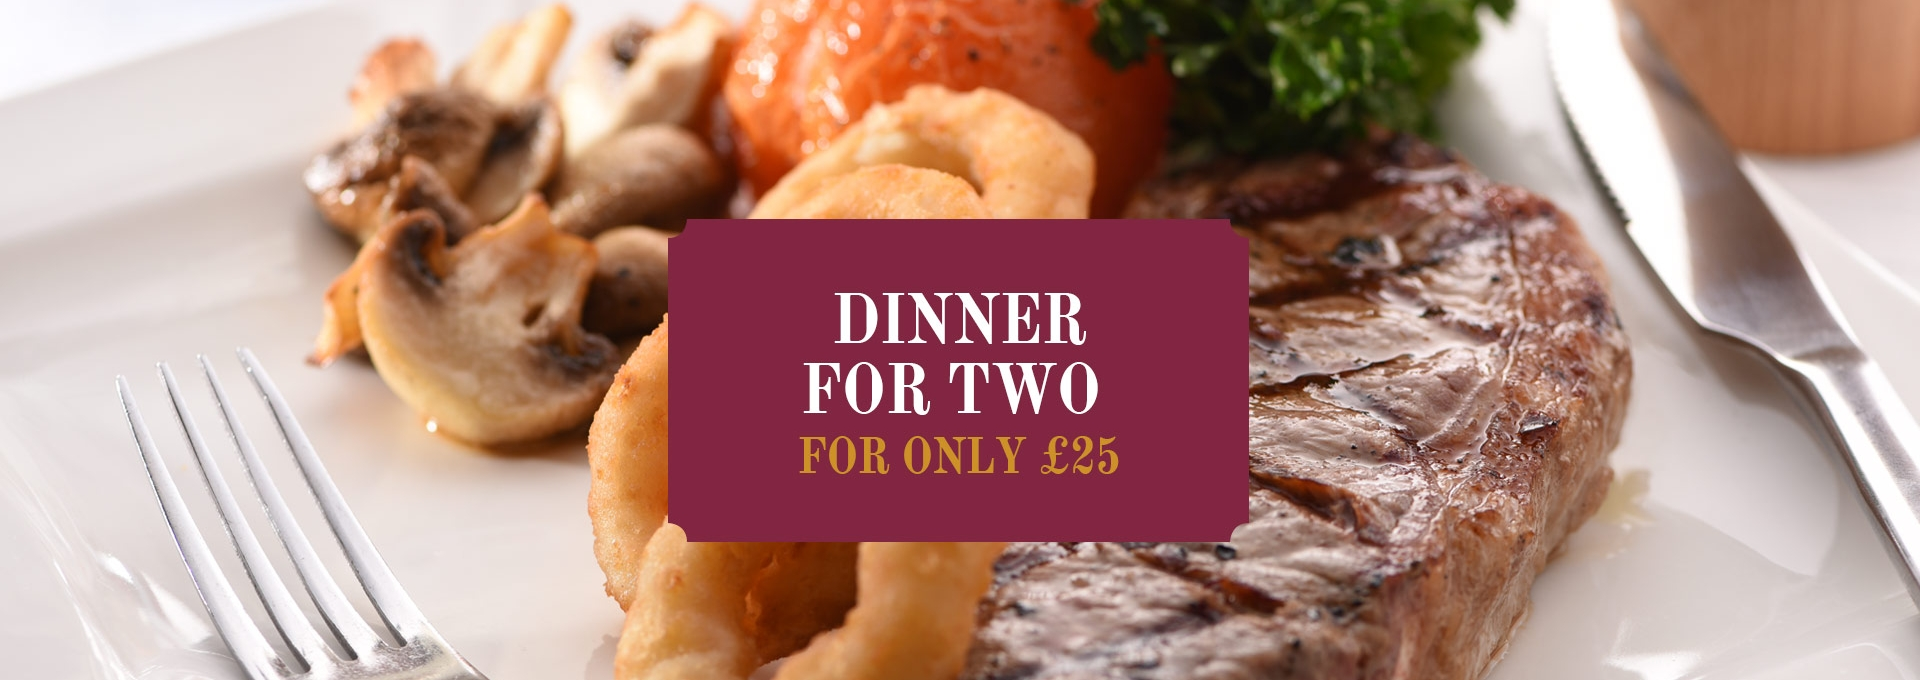 Dinner for two for only £25